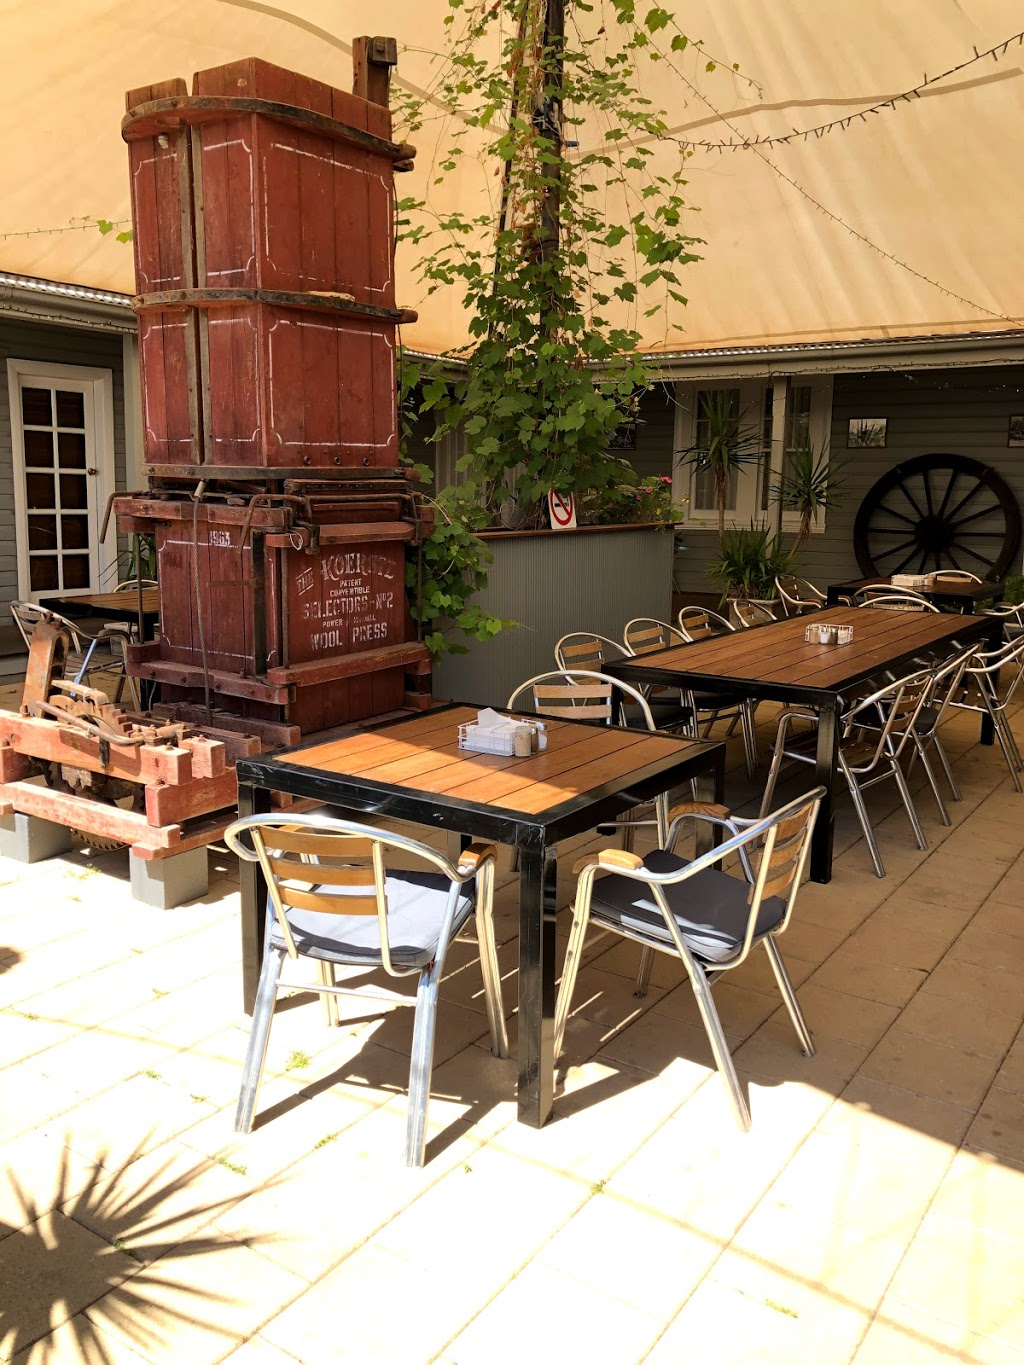 The Convent Hay- Boutique Accommodation & Café | cafe | 160 Pine St, Hay NSW 2711, Australia | 0467740217 OR +61 467 740 217